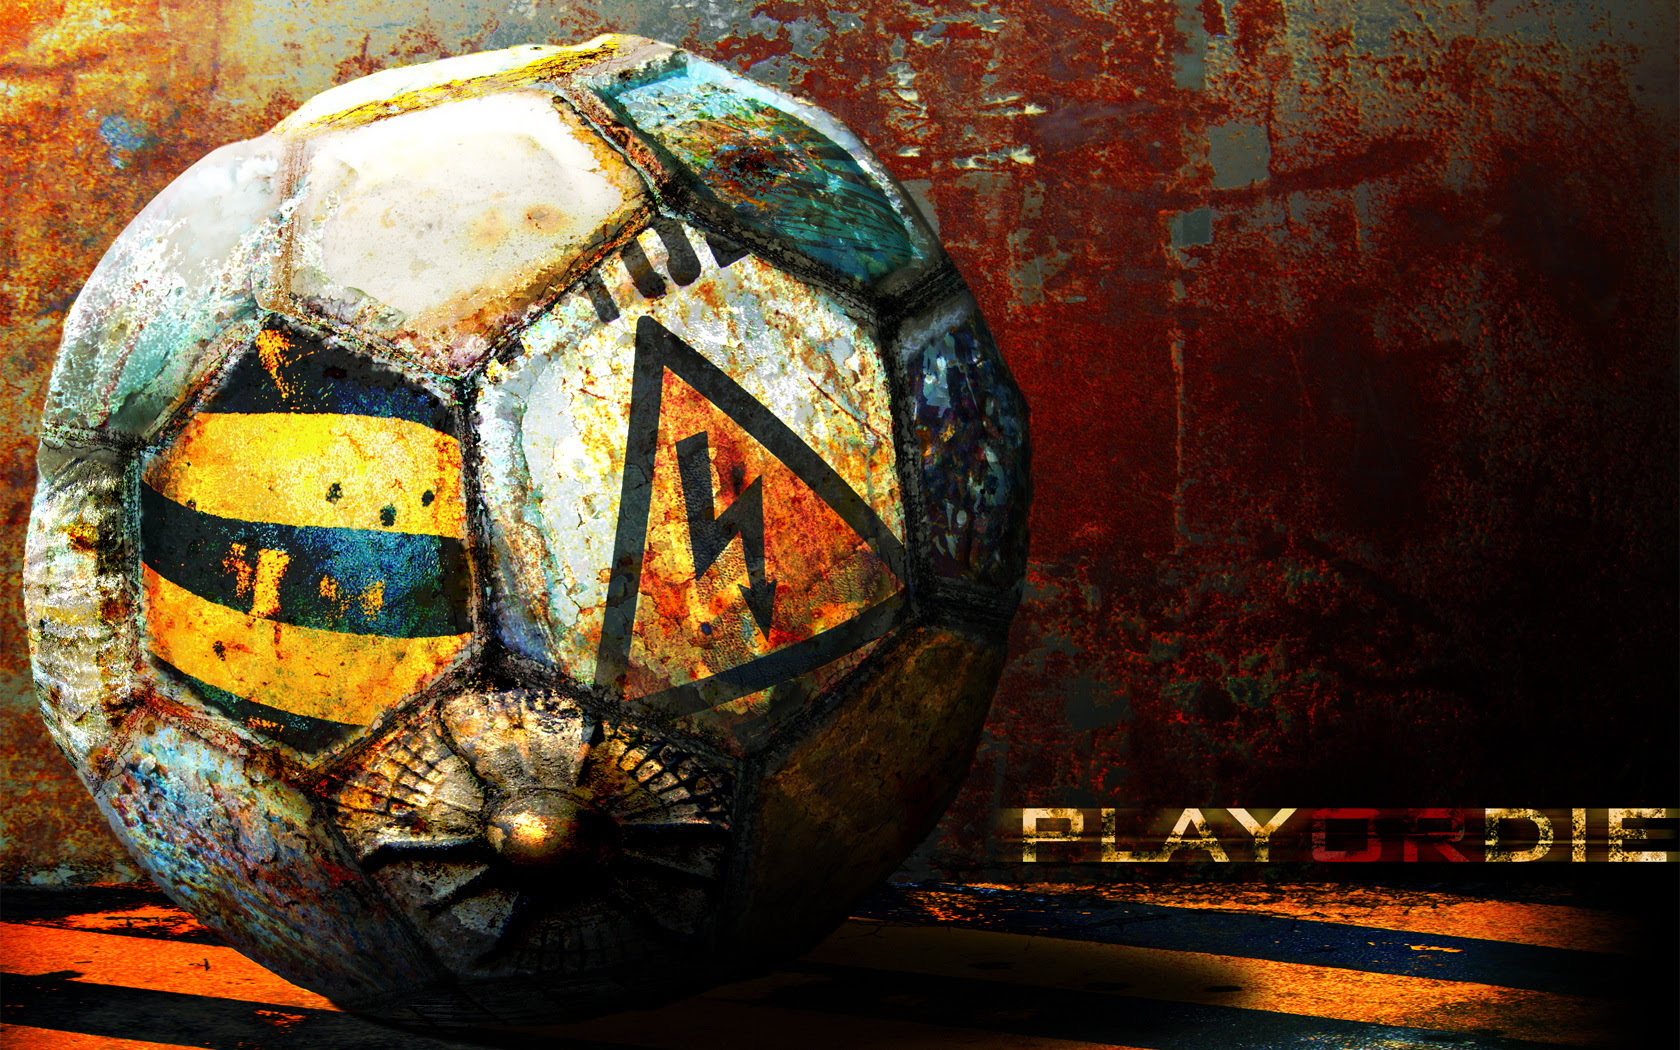 soccer hd wallpapers  HD Desktop Wallpapers  4k HD